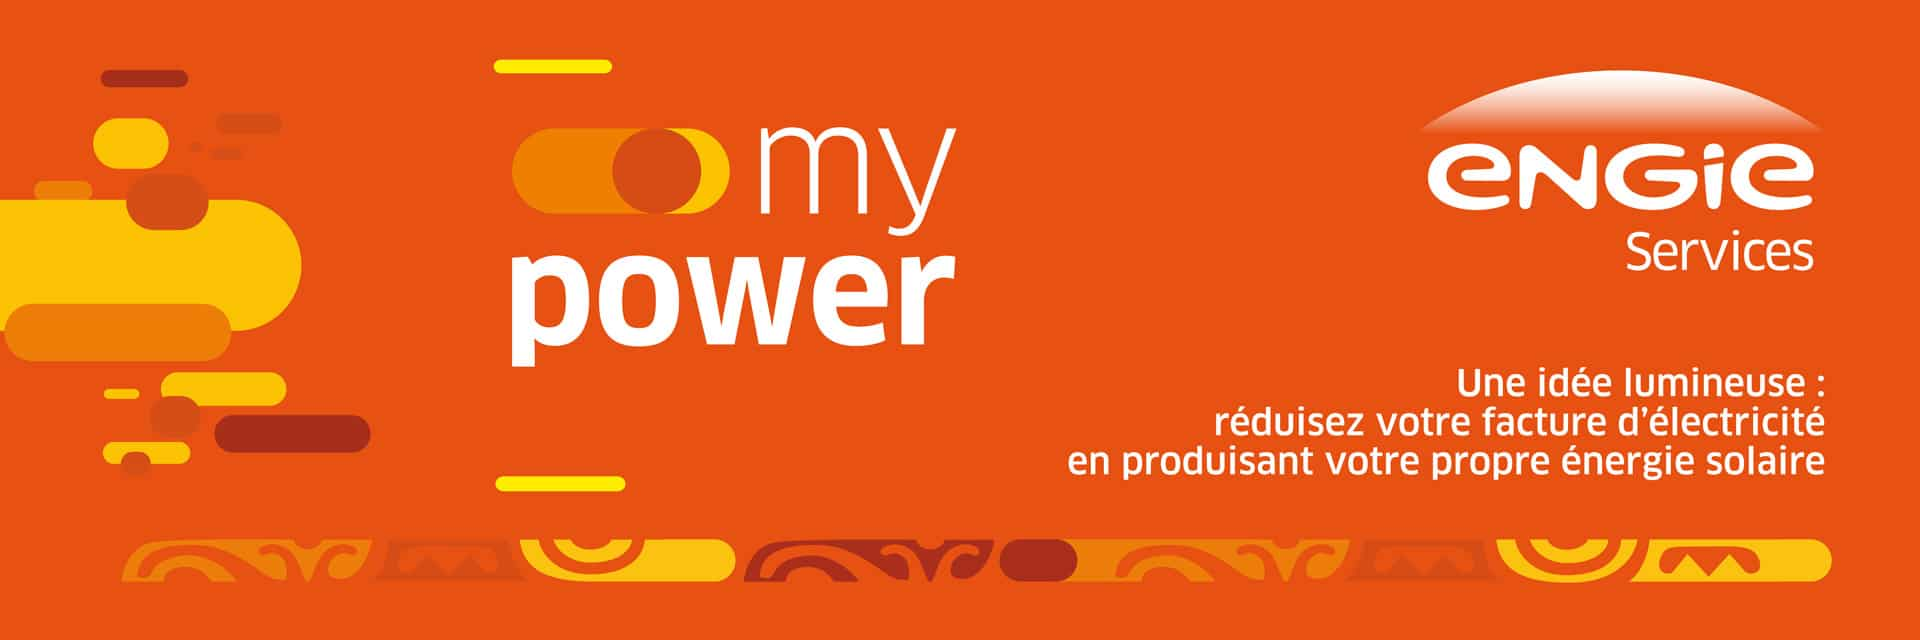 Vente Engie services - My Power